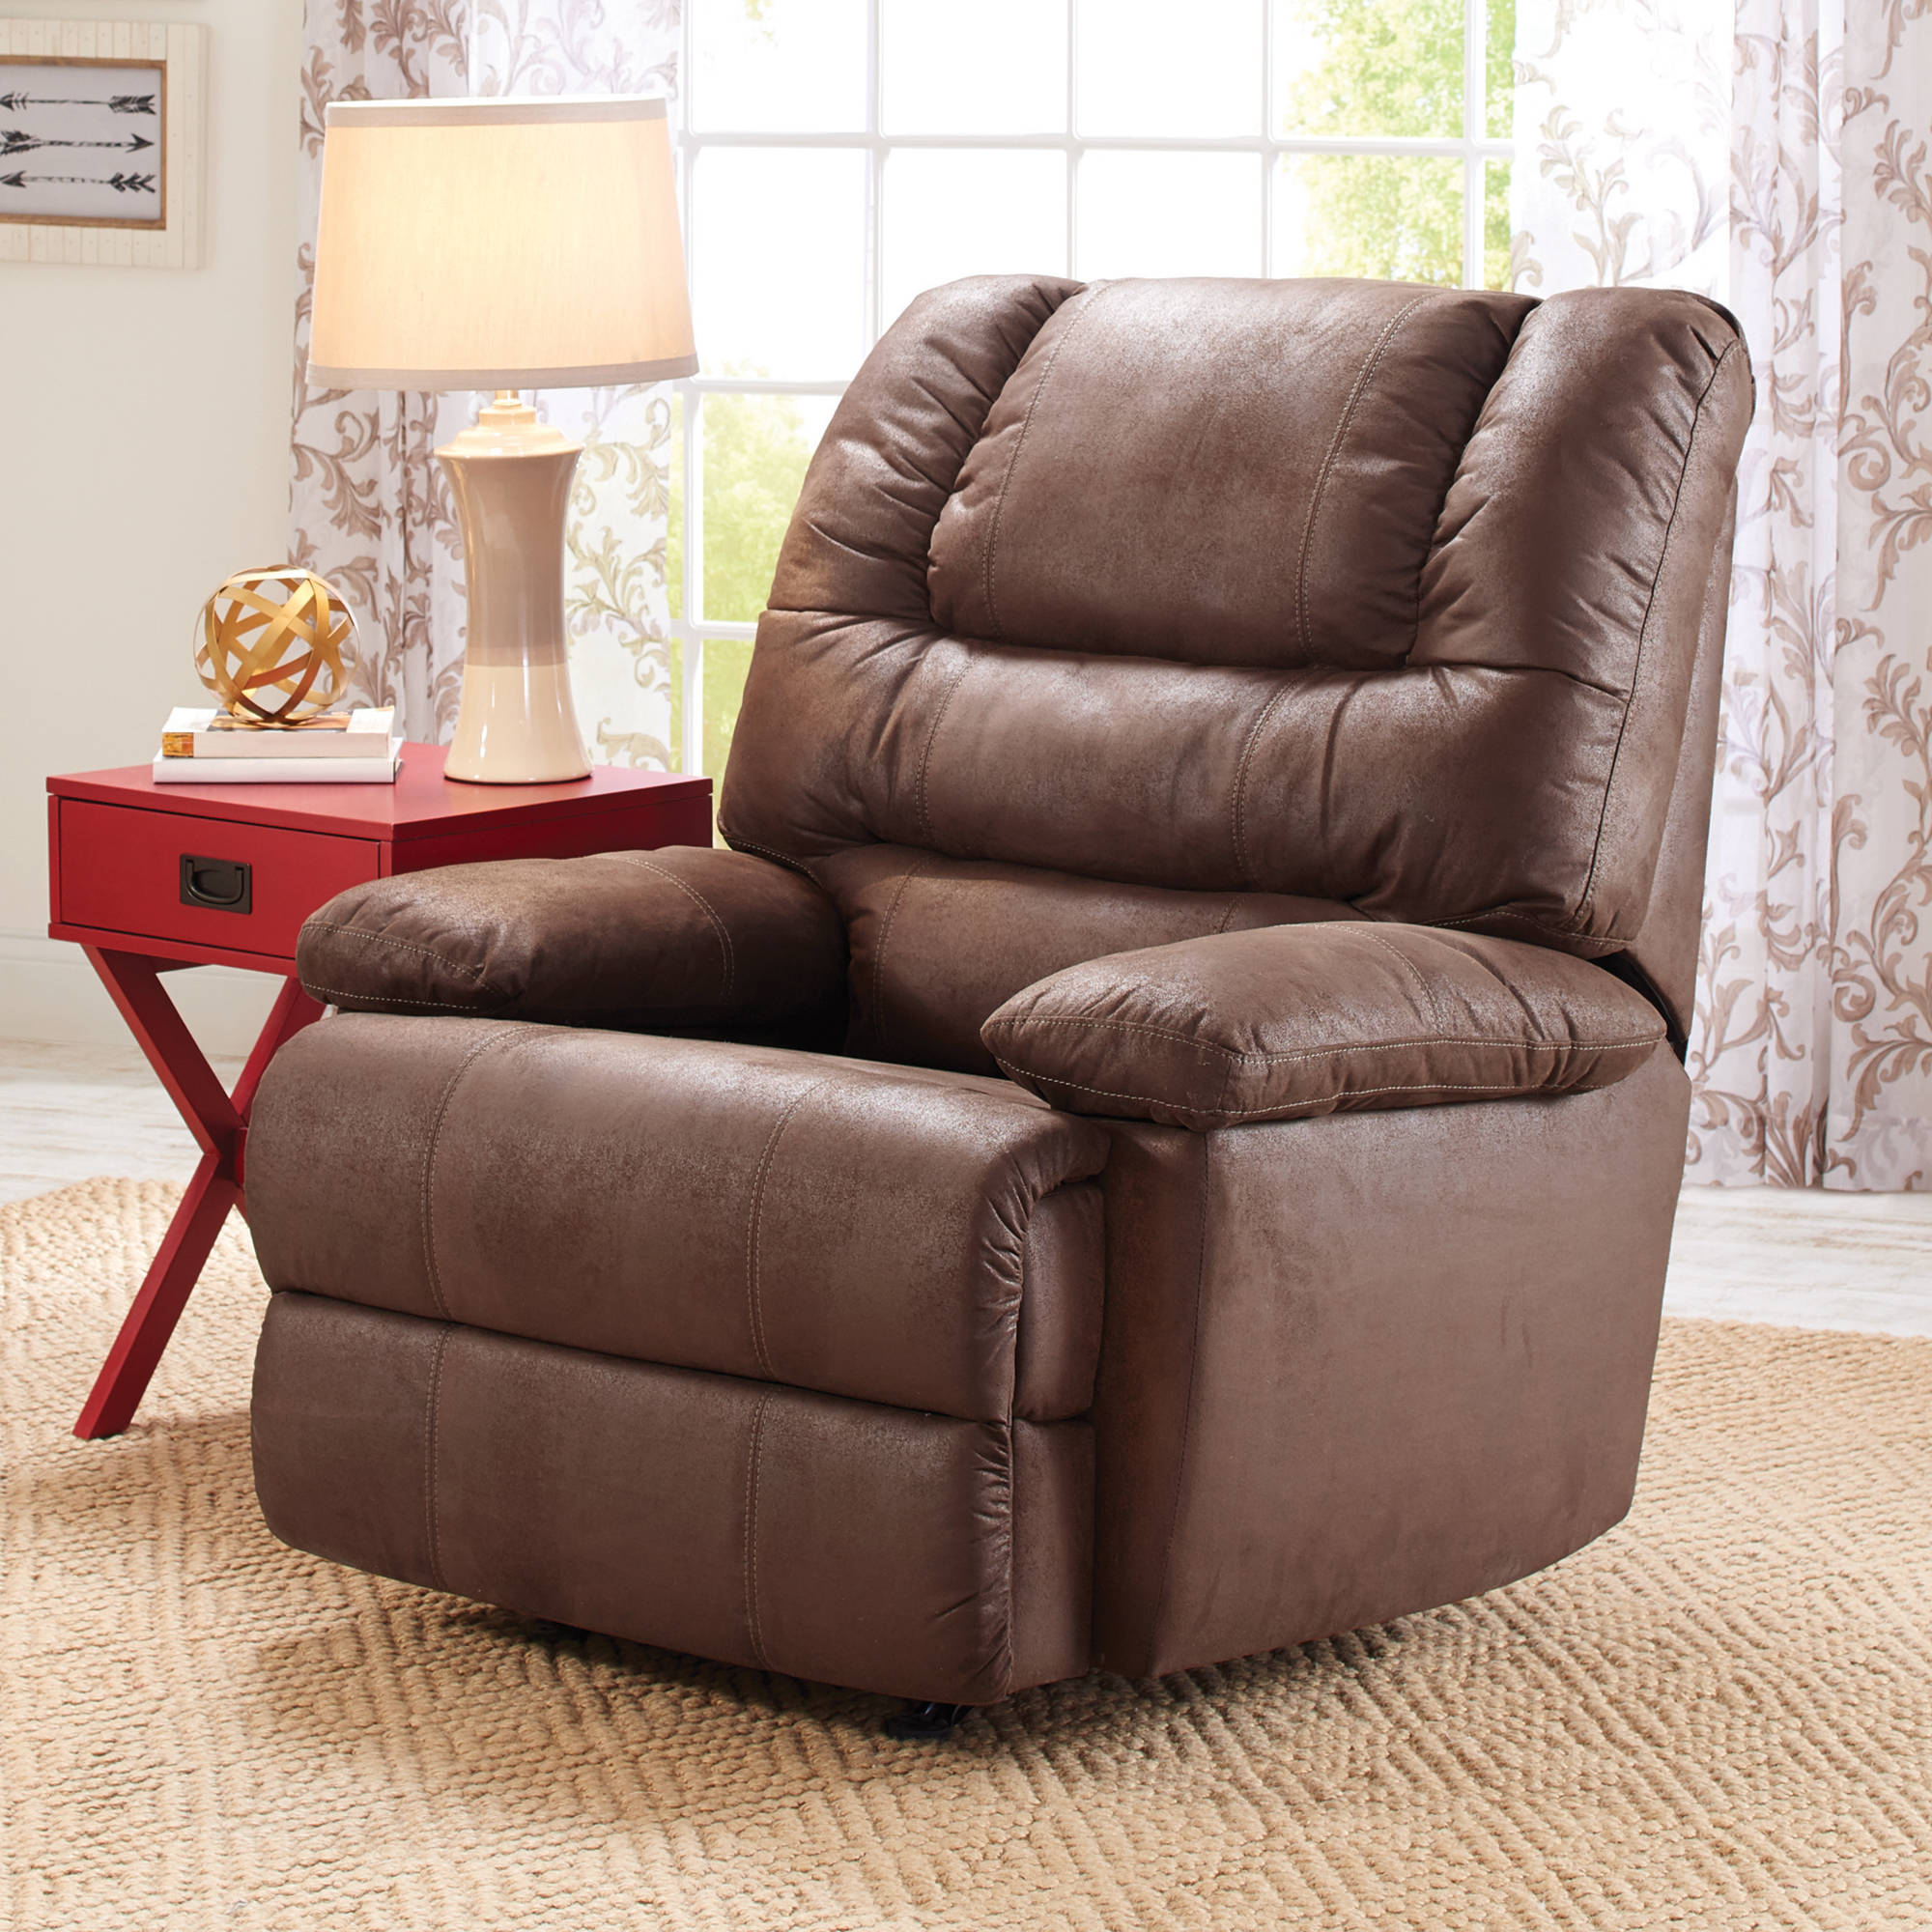 Living Room Sets Recliners recliners - walmart